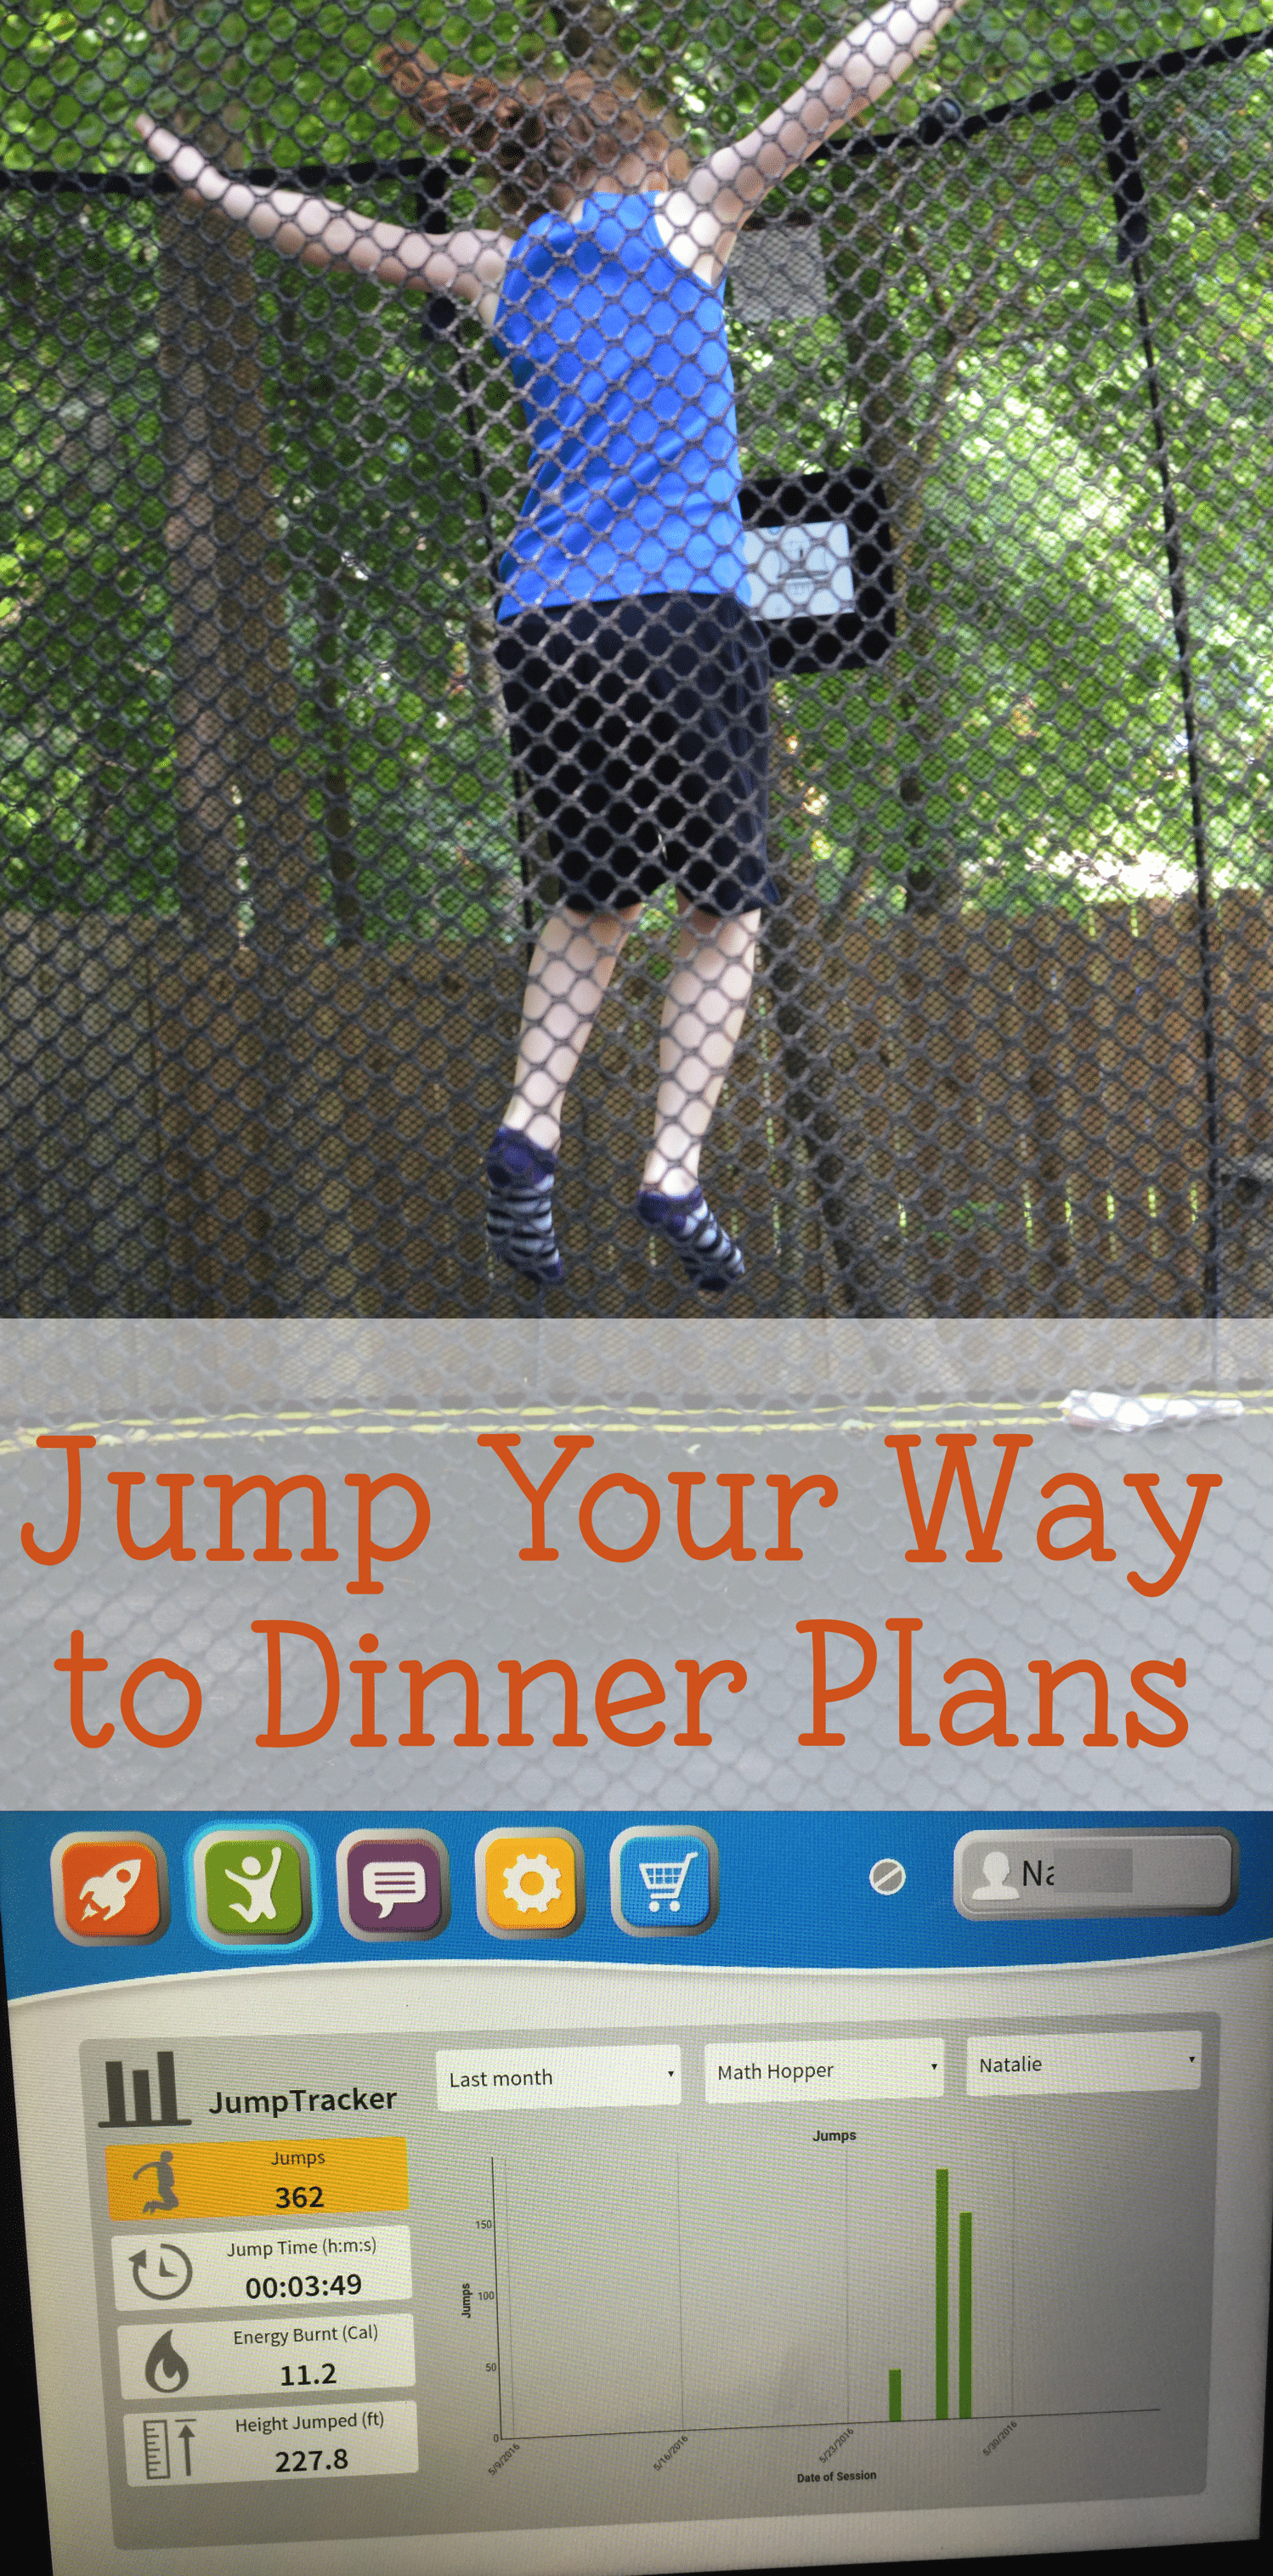 Jump your way to dinner plans